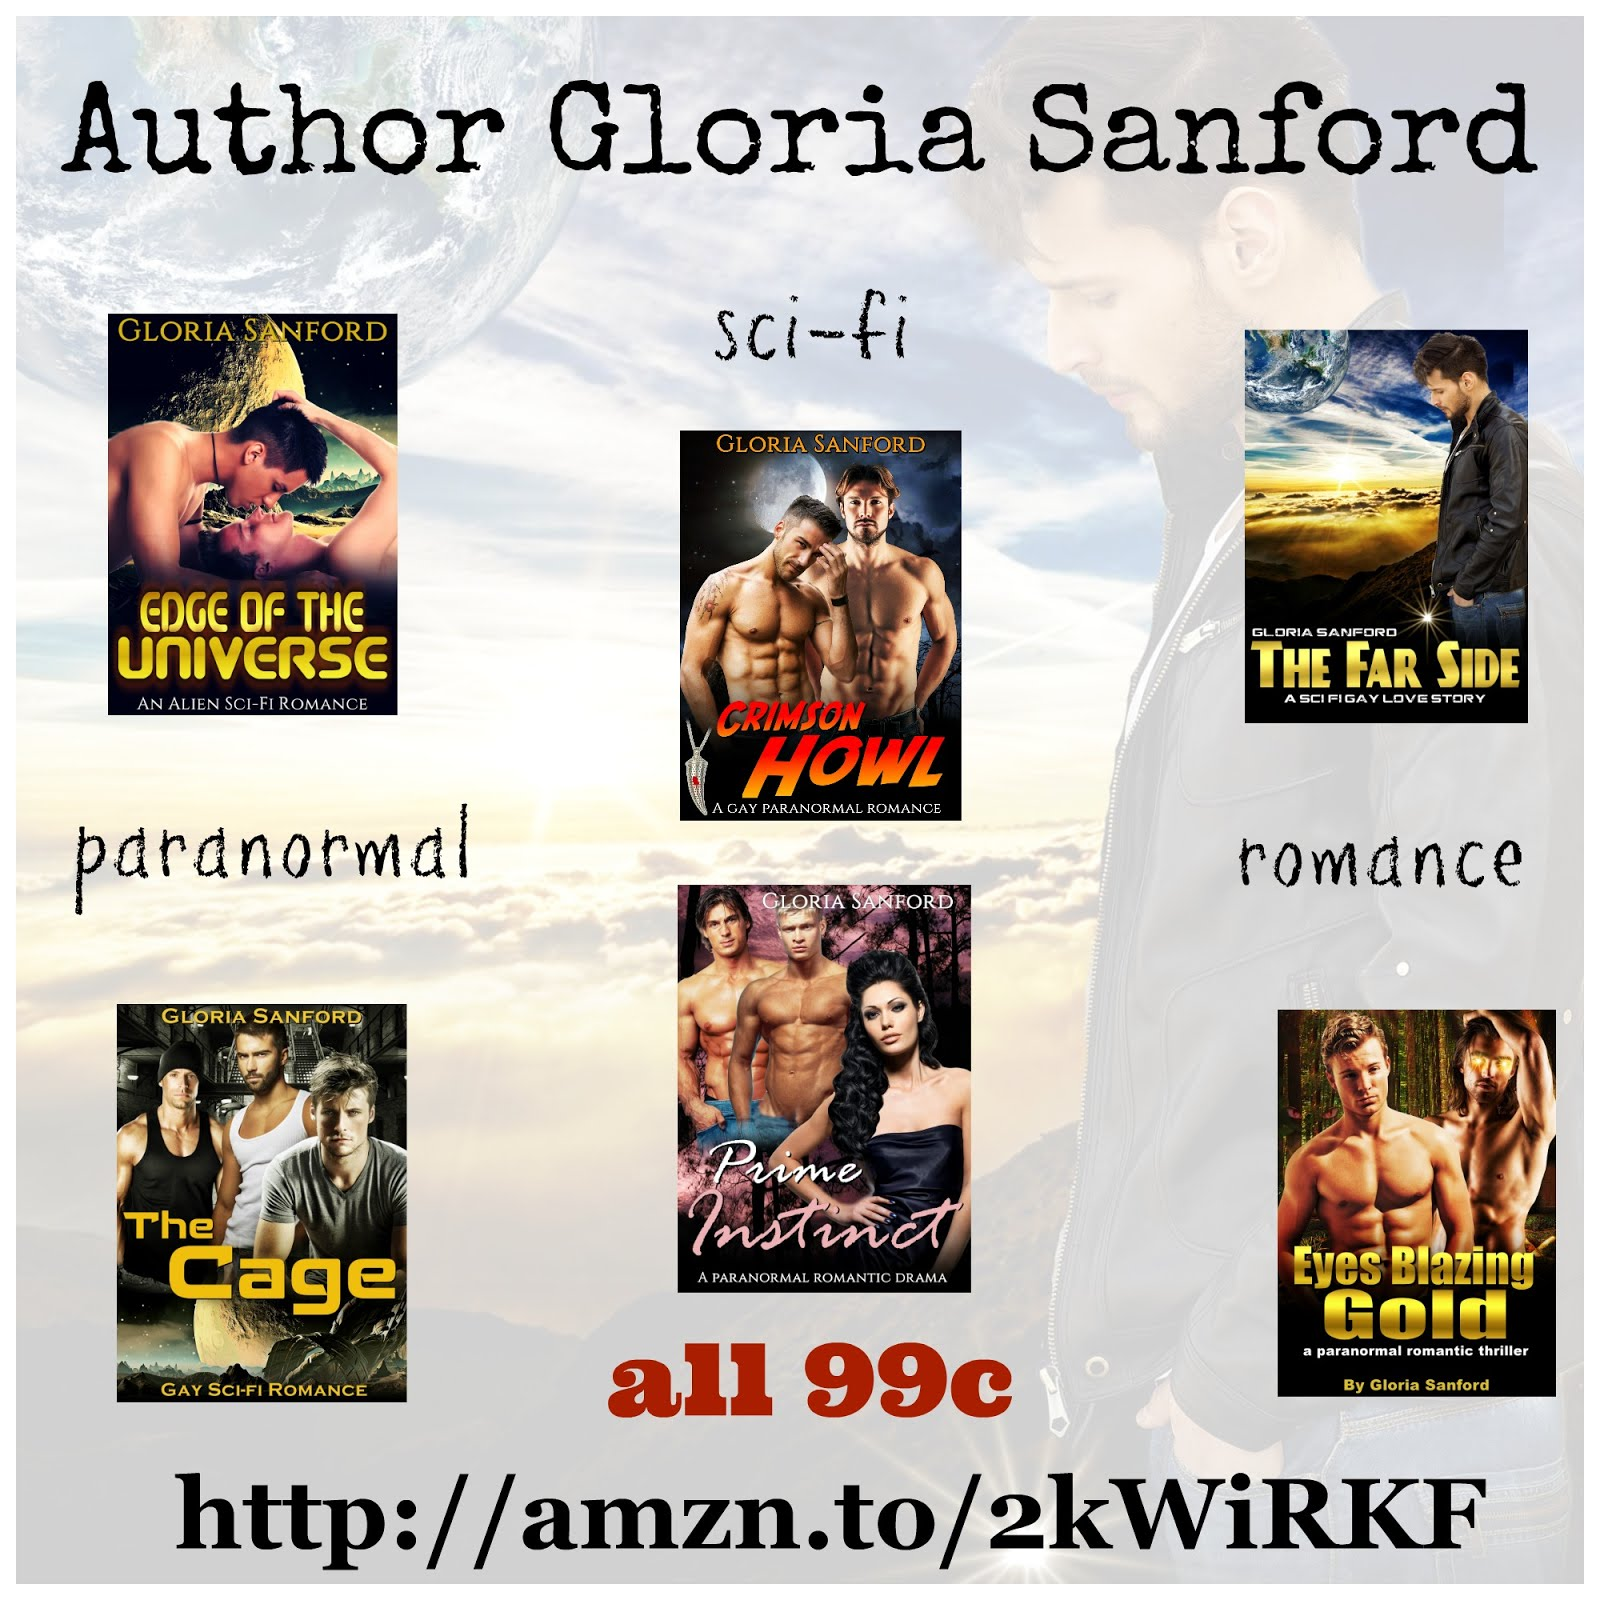 All of Gloria Sanford's books are now 99 cents!